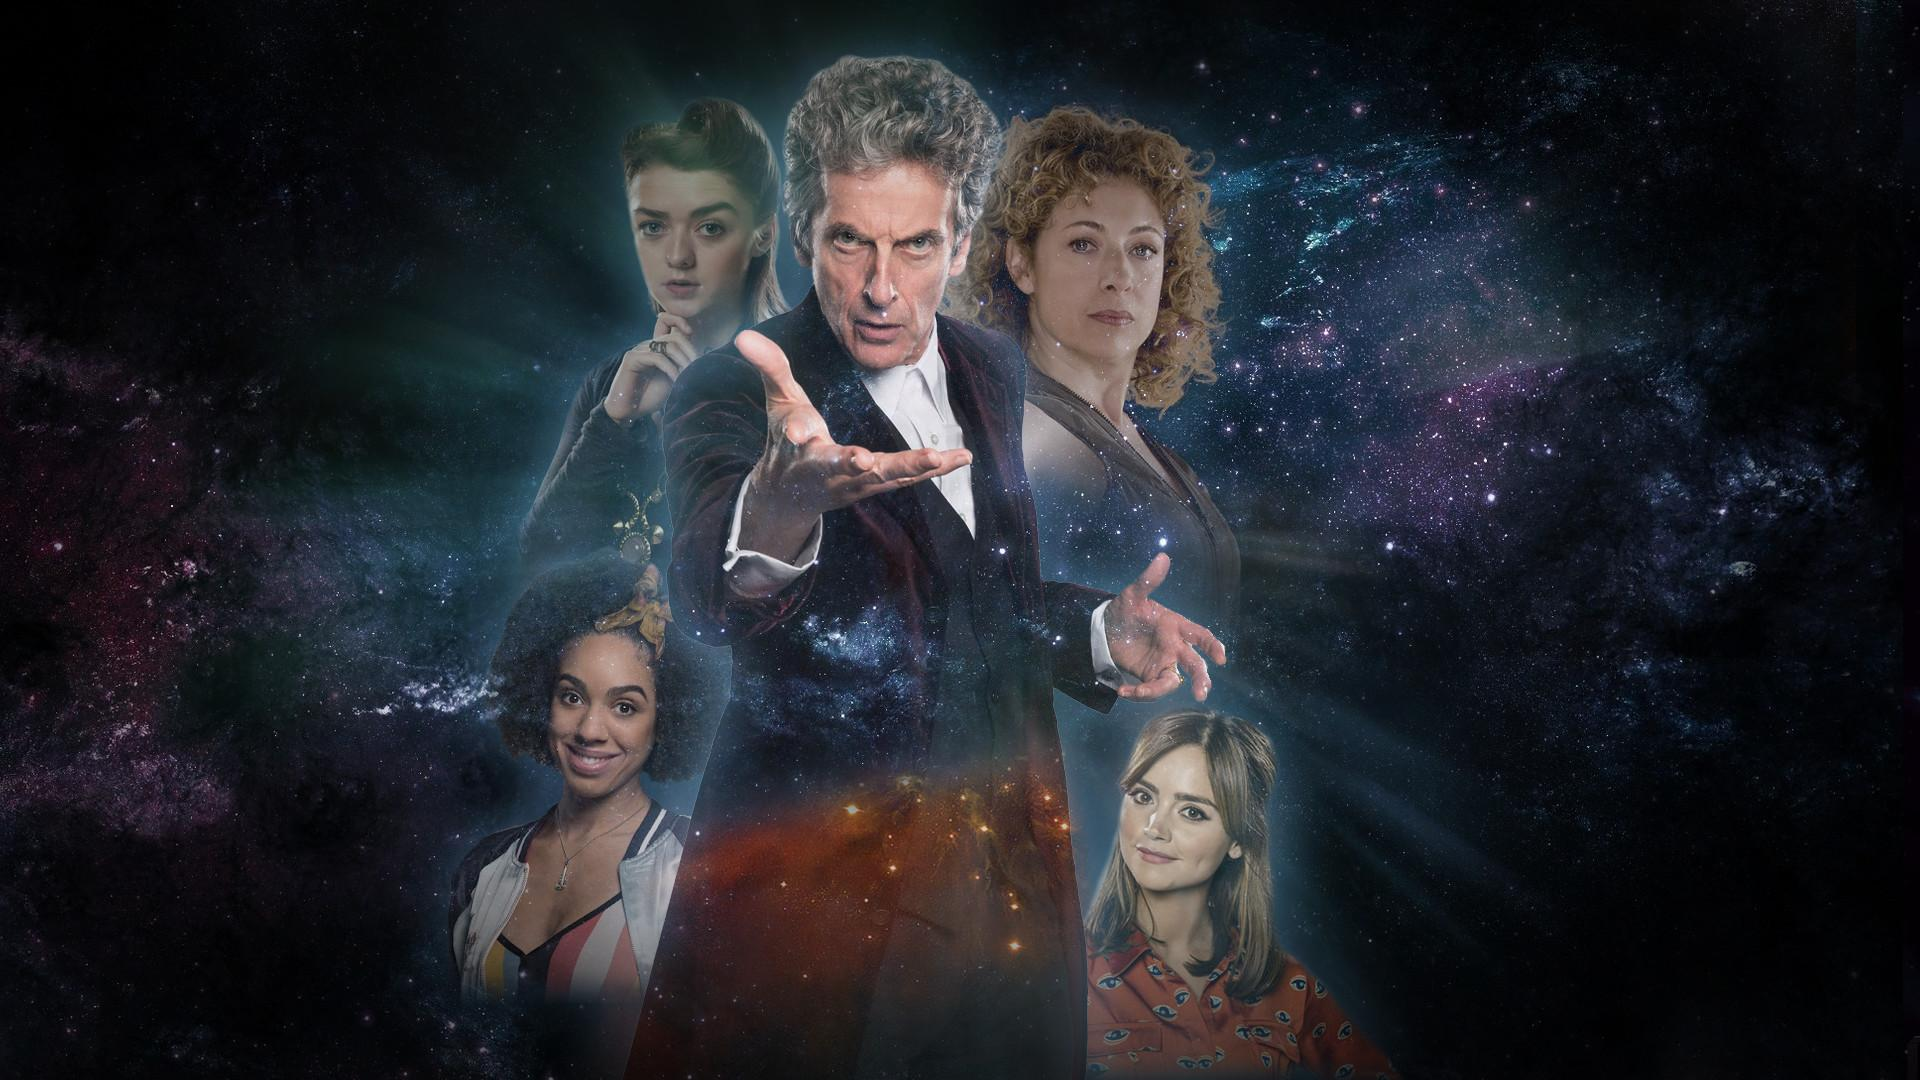 Doctor Who Season 12 Wallpapers Wallpaper Cave